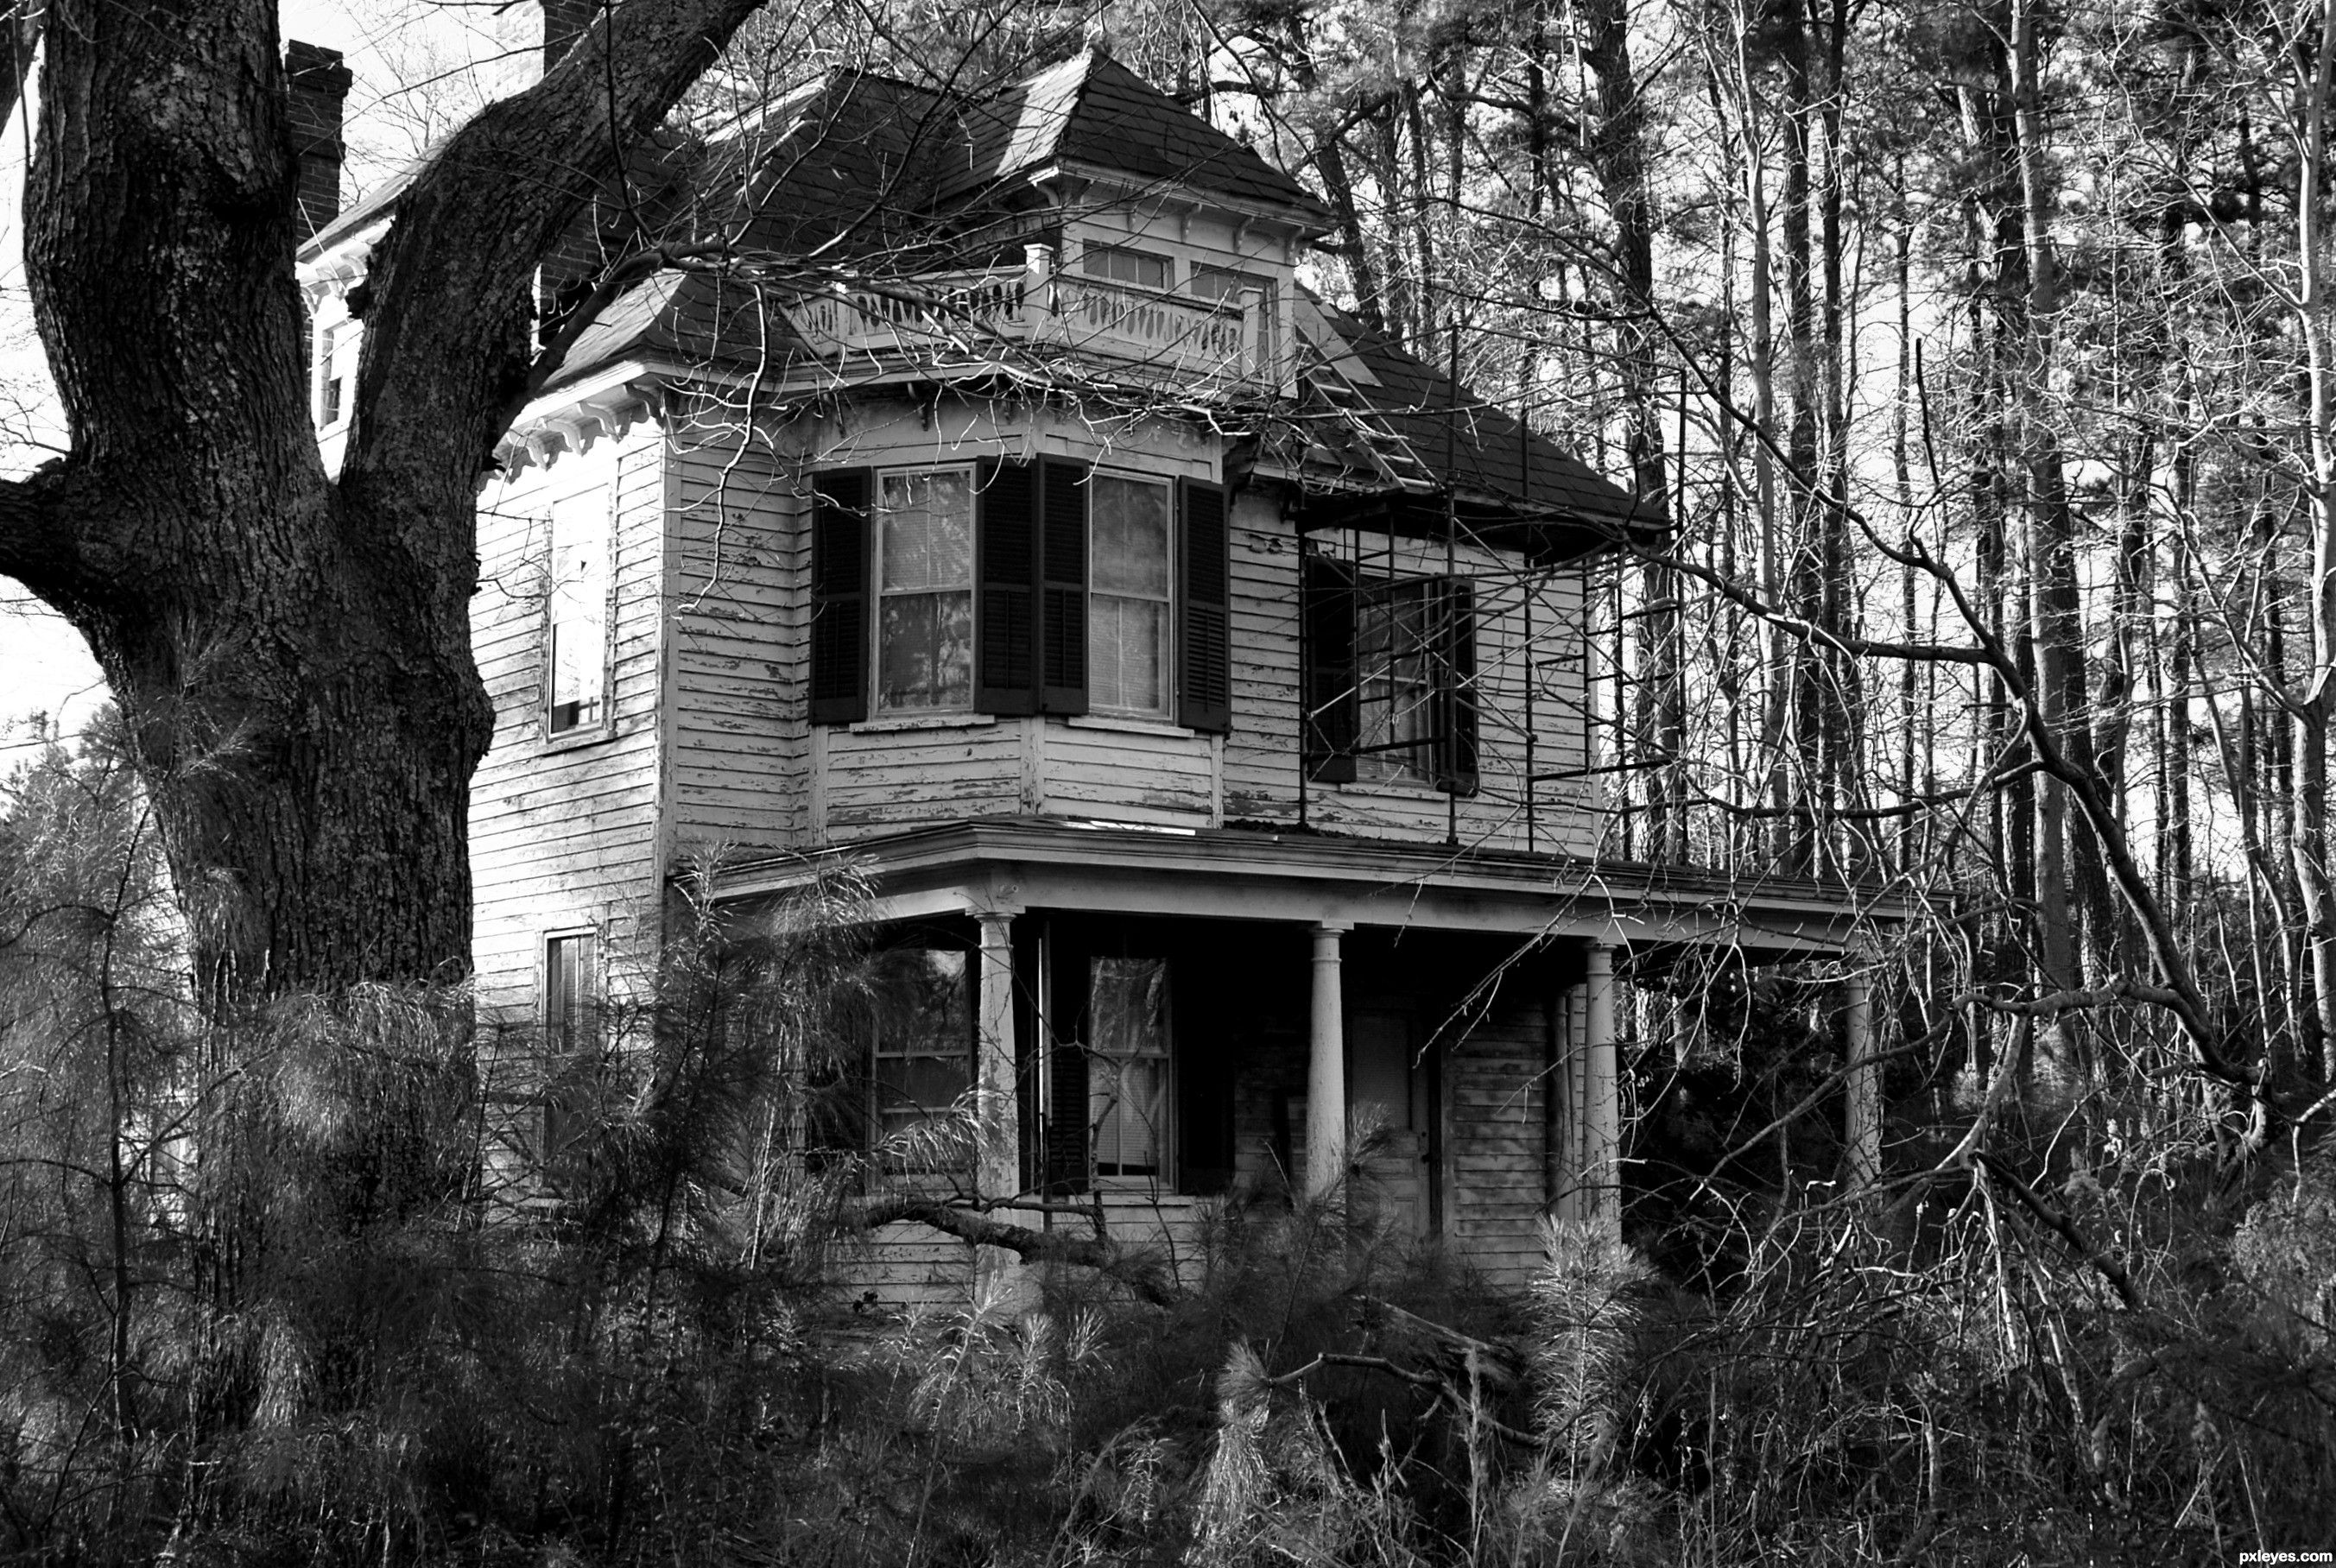 Pictures of scary houses